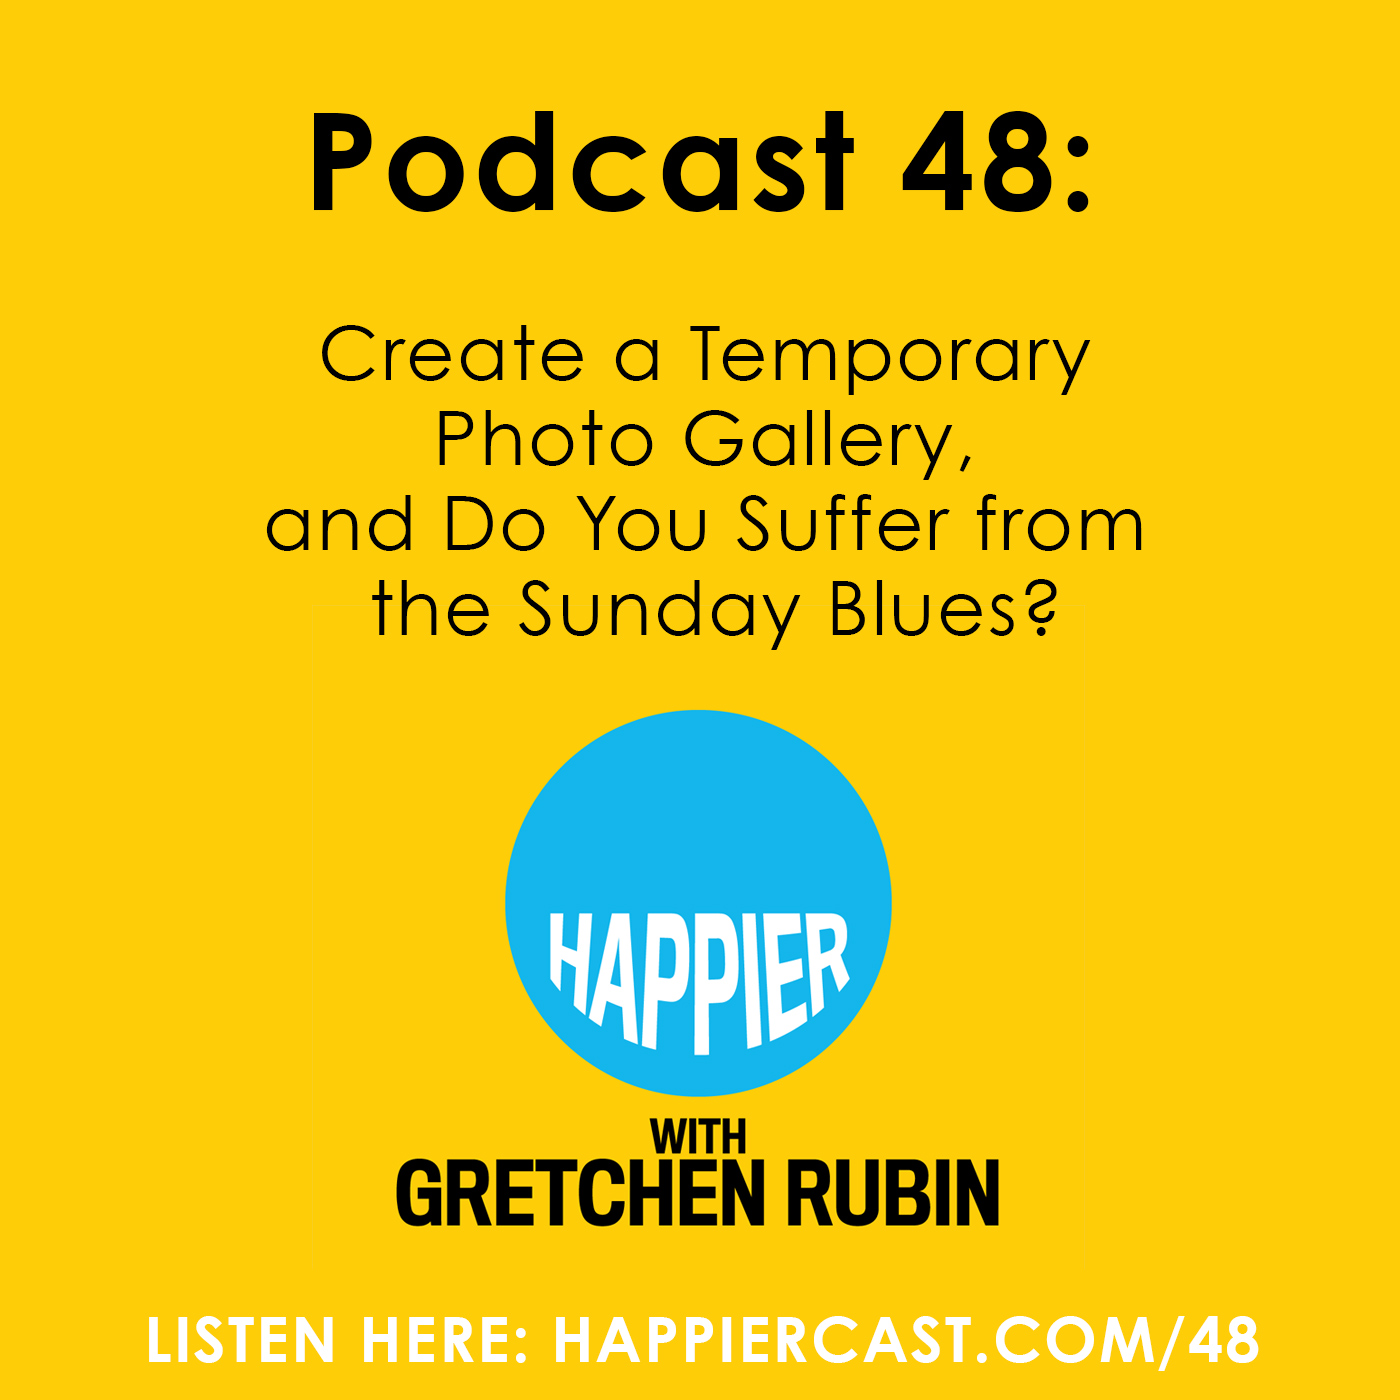 Happier with Gretchen Rubin - Listen to this episode at Happiercast.com/48